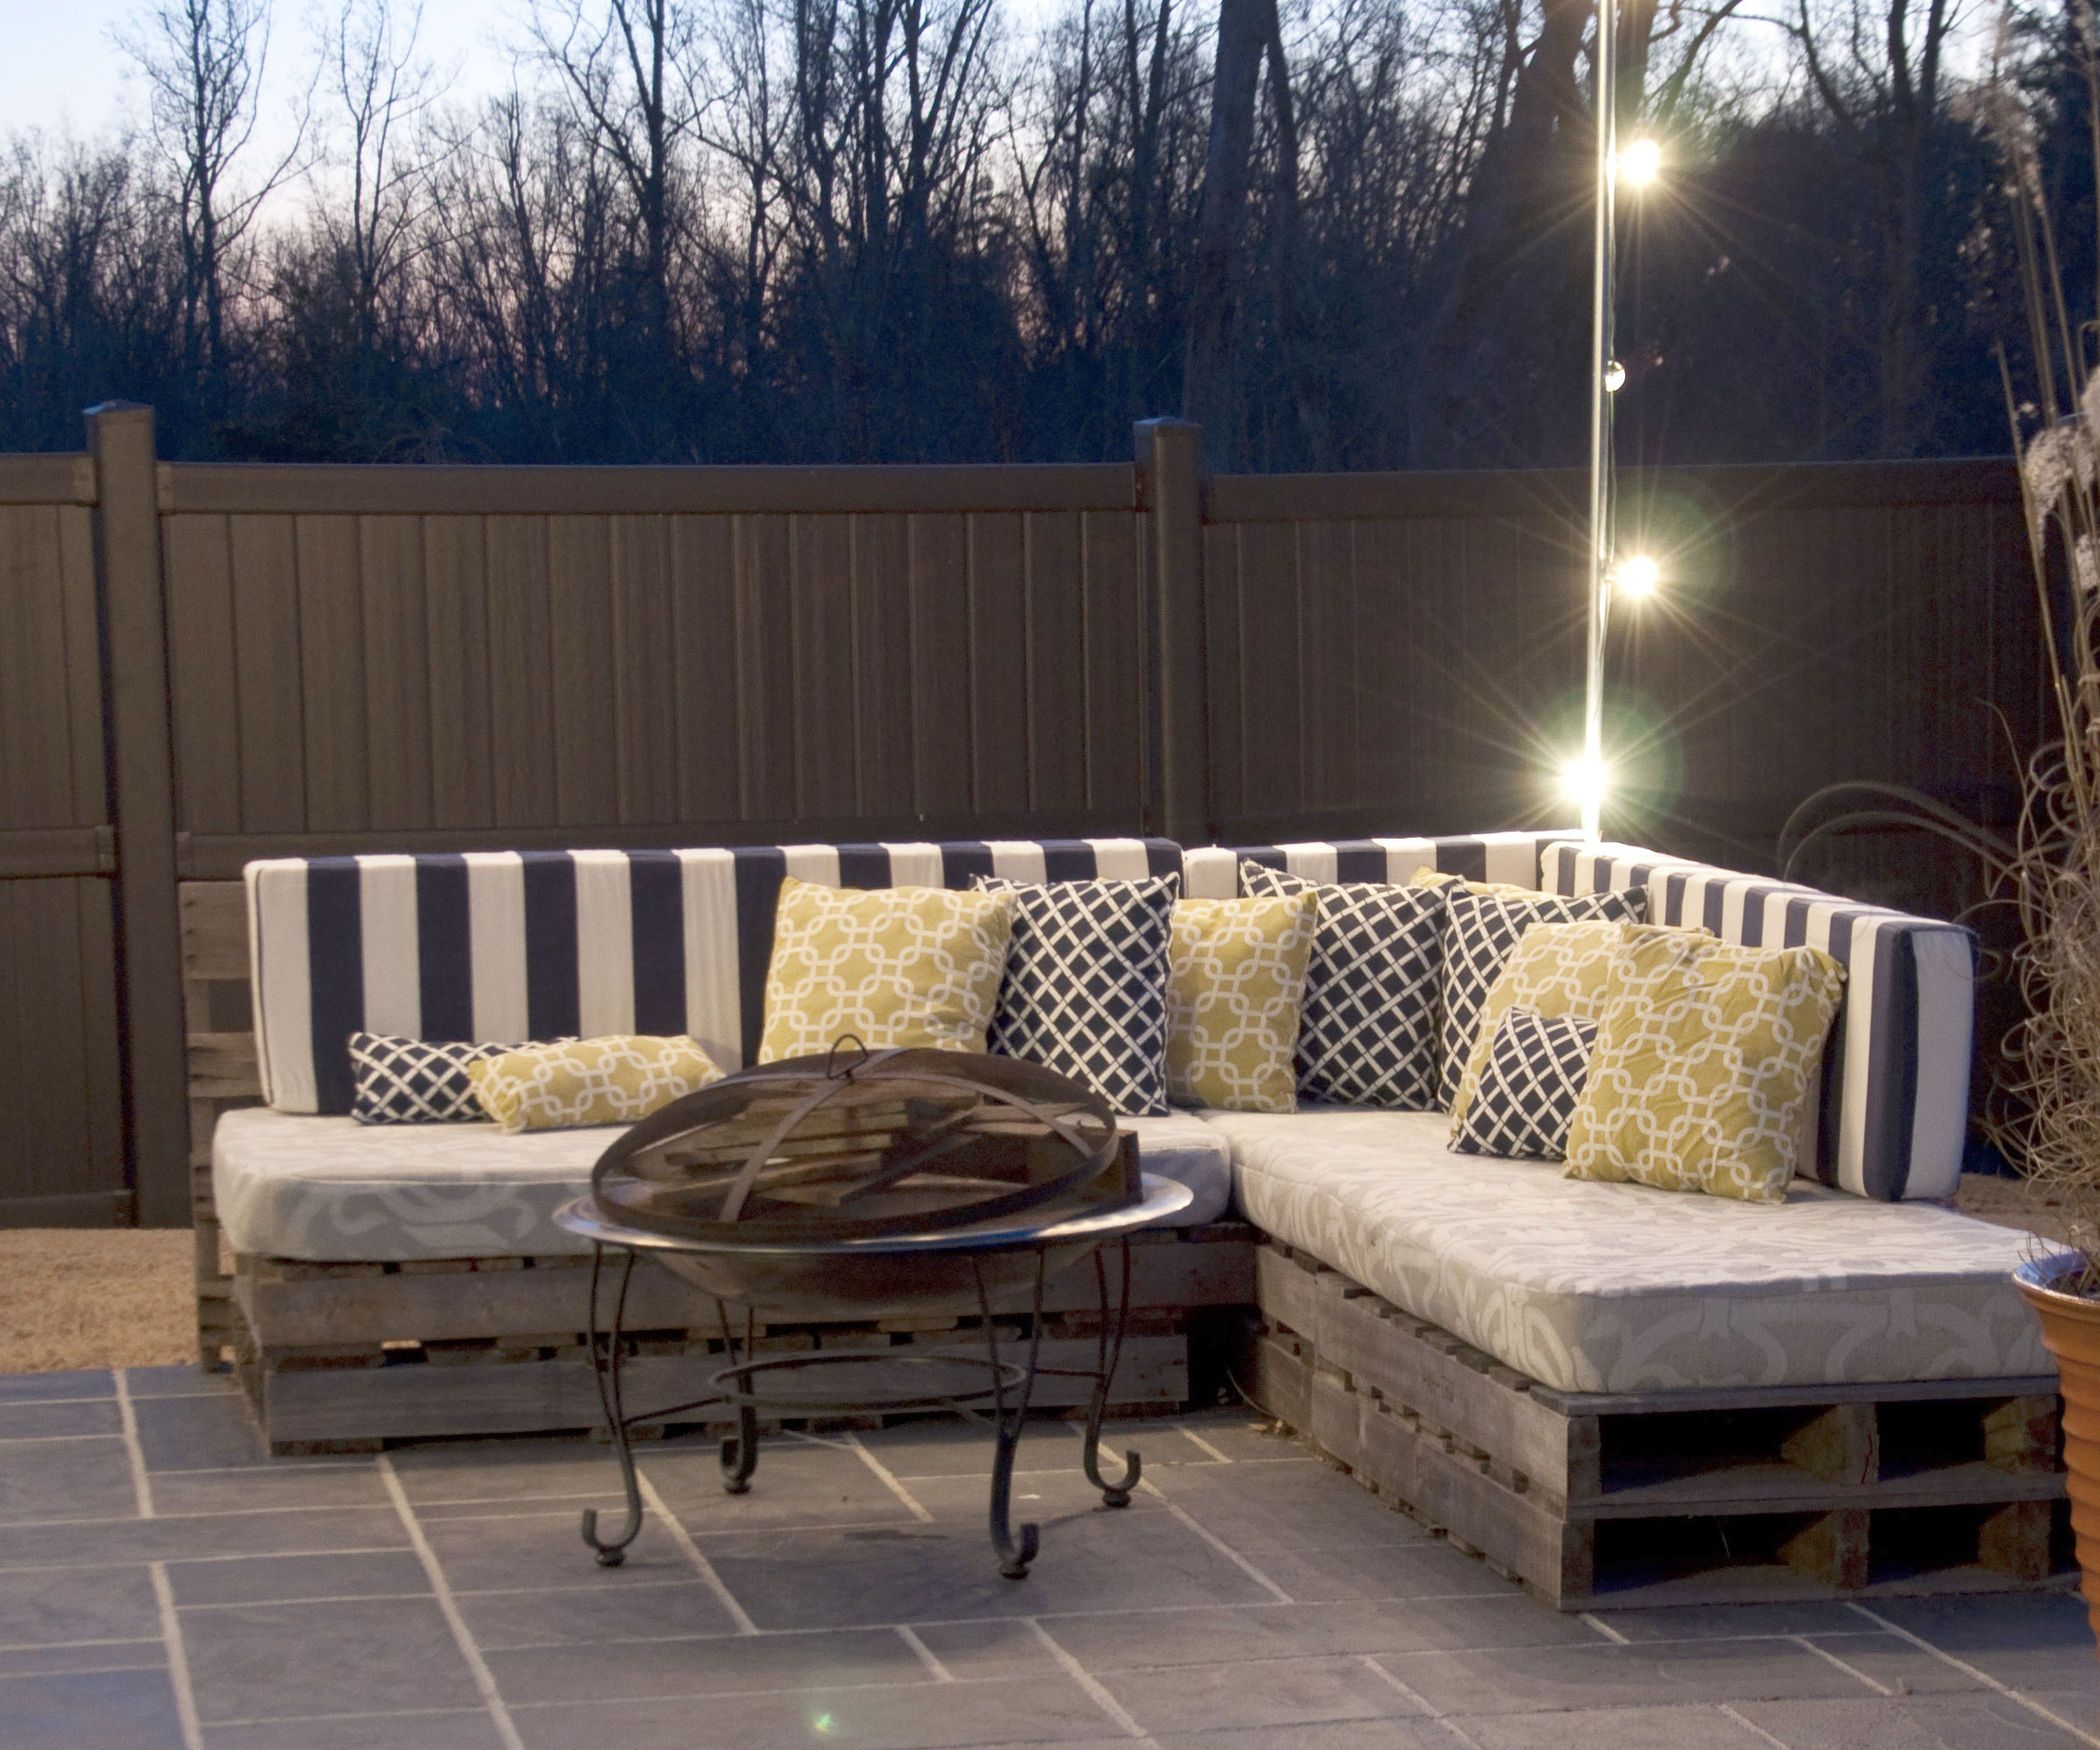 Pallet Sofa Pallets Garden Patio Diy Pallet Sofa Pallet Couch